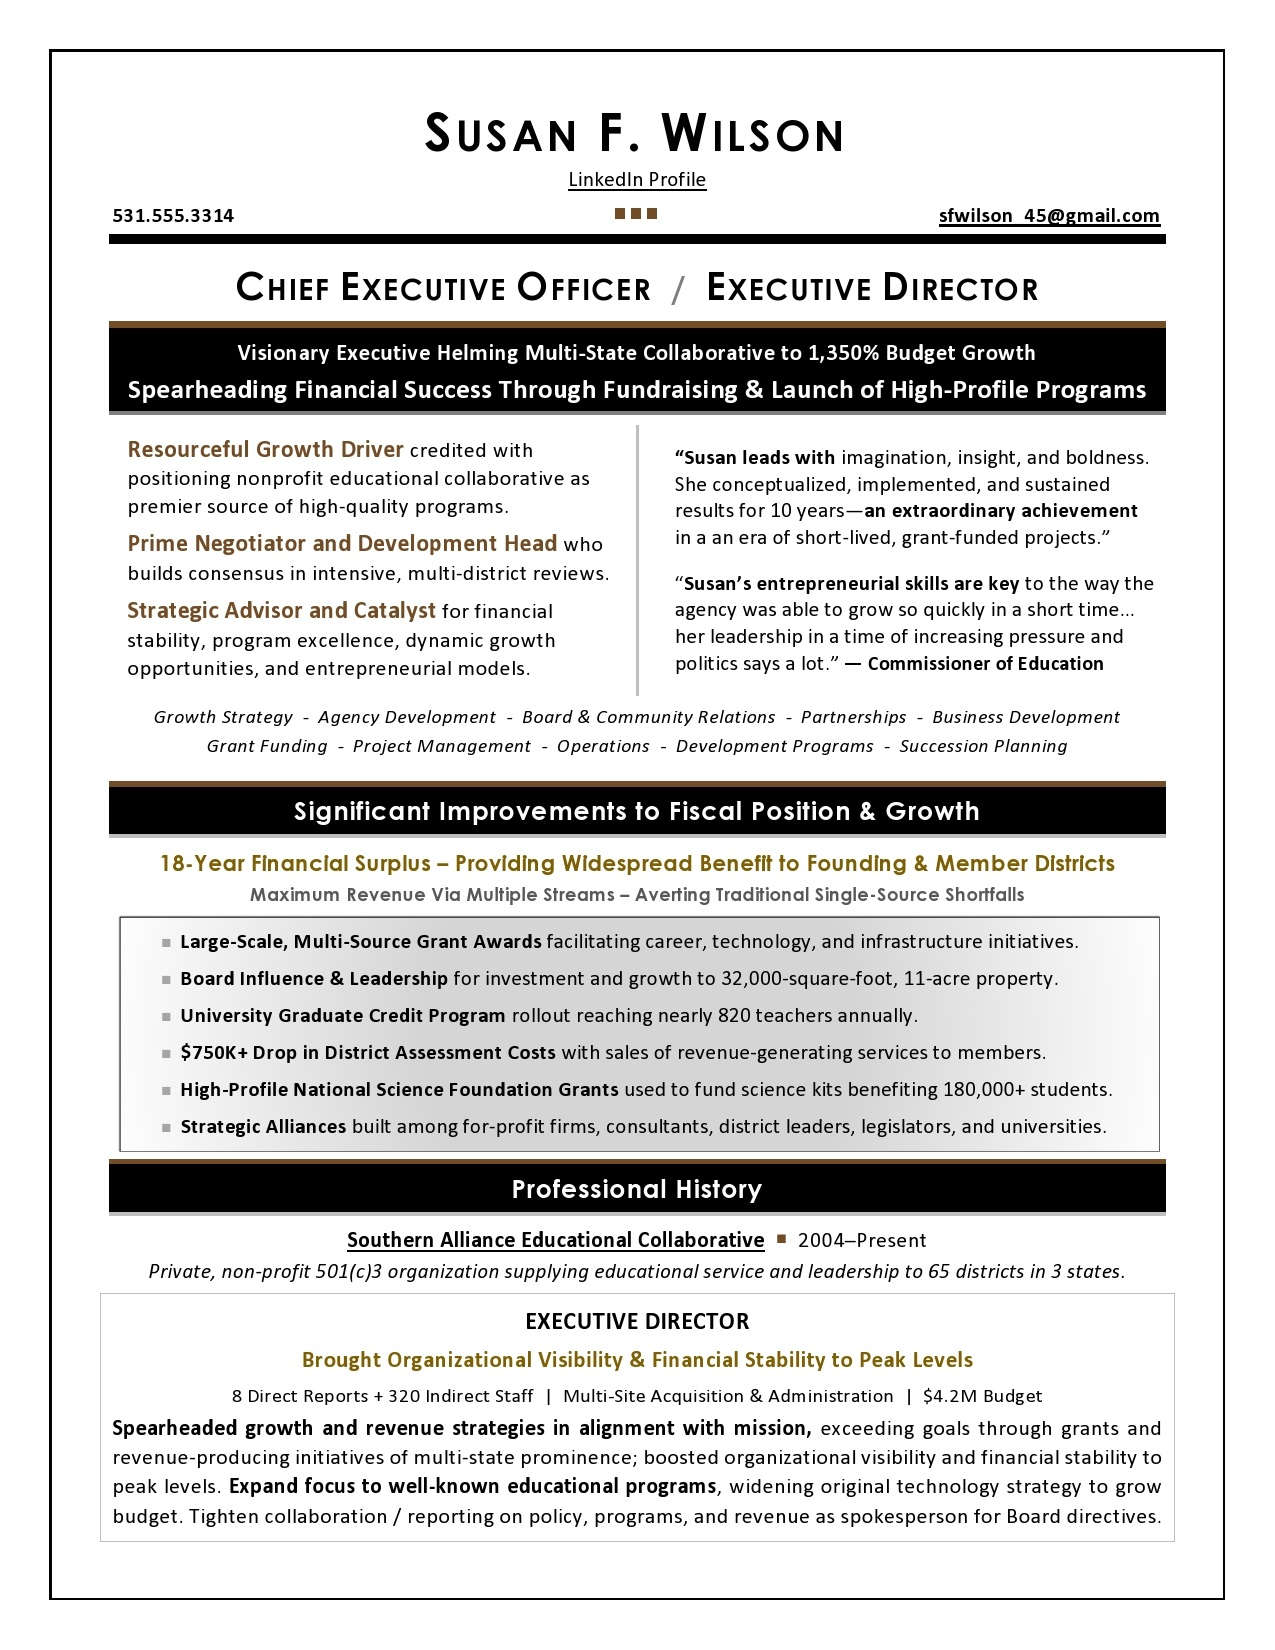 Nonprofit Ceo Sample Resume Executive Resume Writer